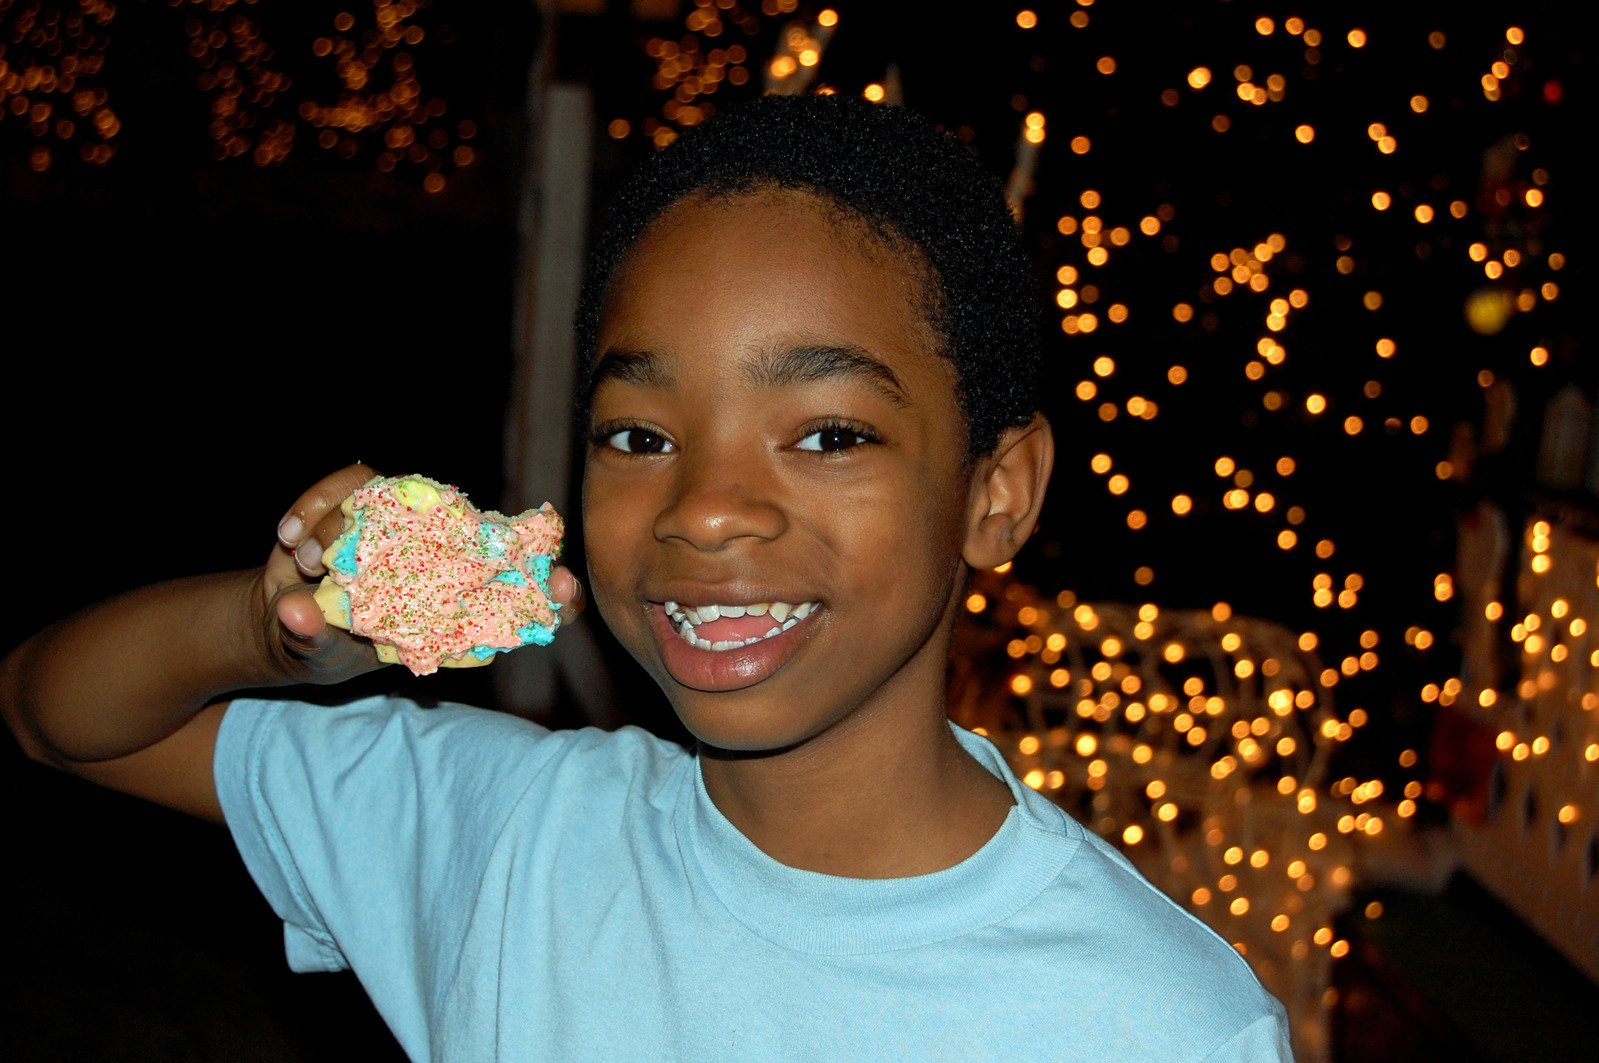 a-young-boy-enjoying-some-sweets-image